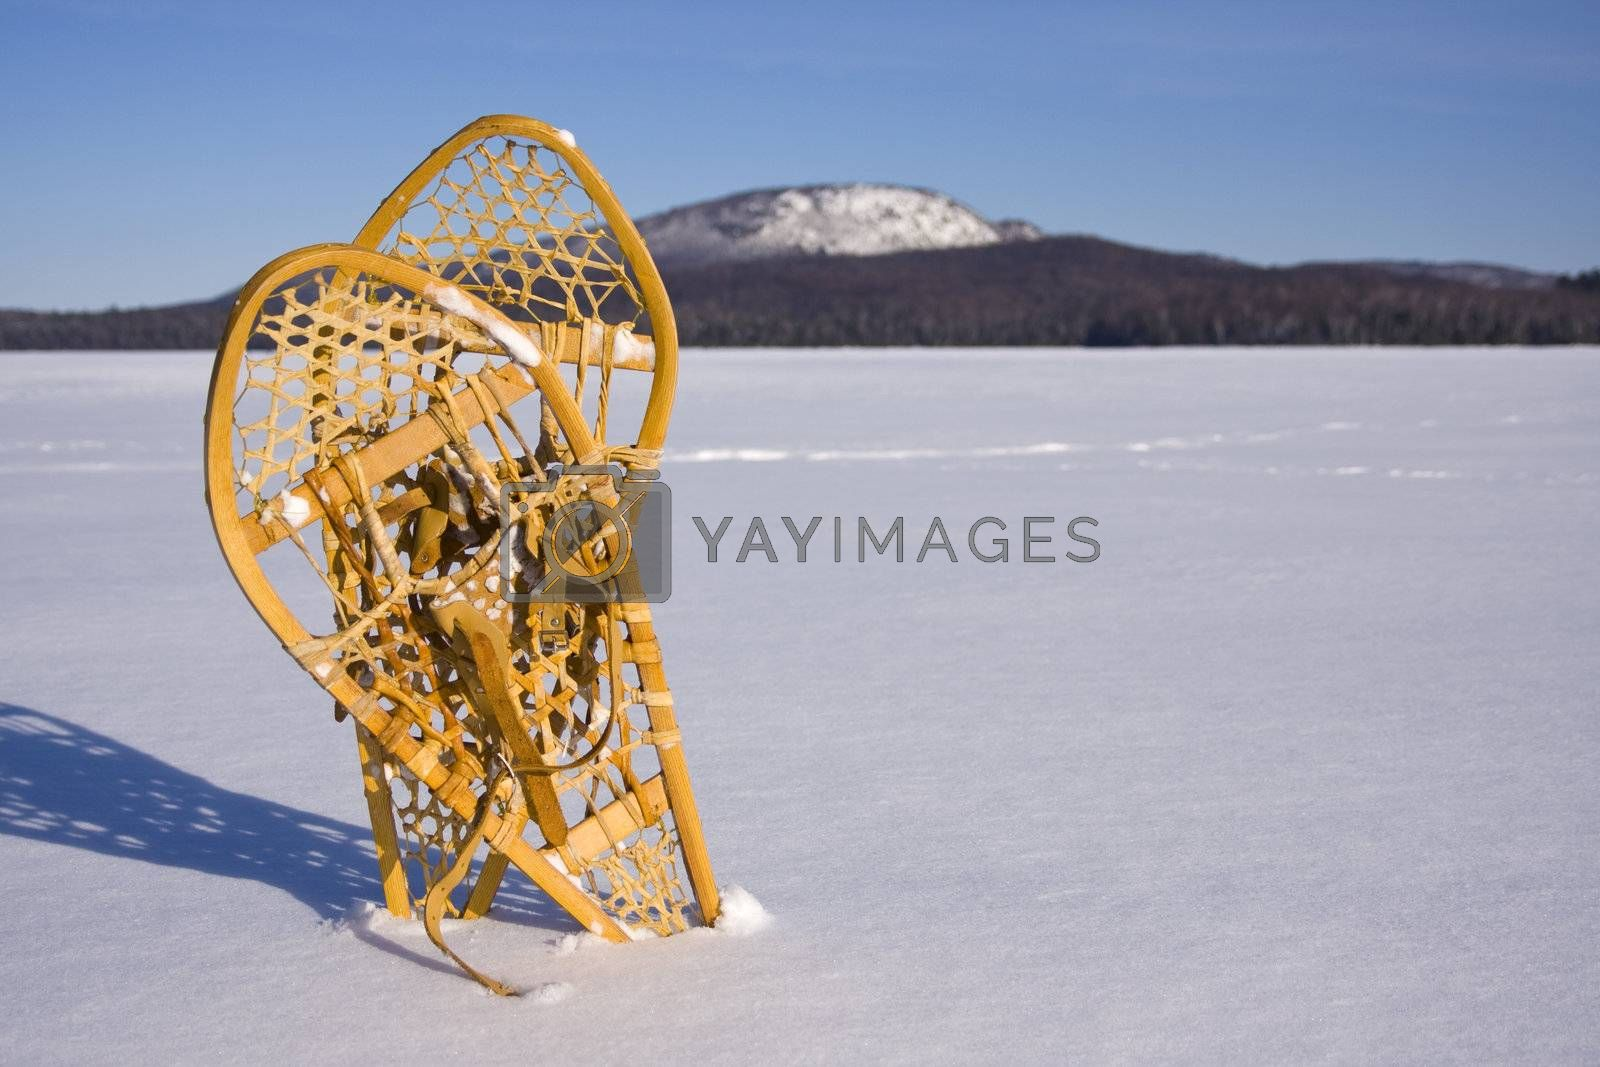 Pair of Snowshoes in the Snow by le_cyclope